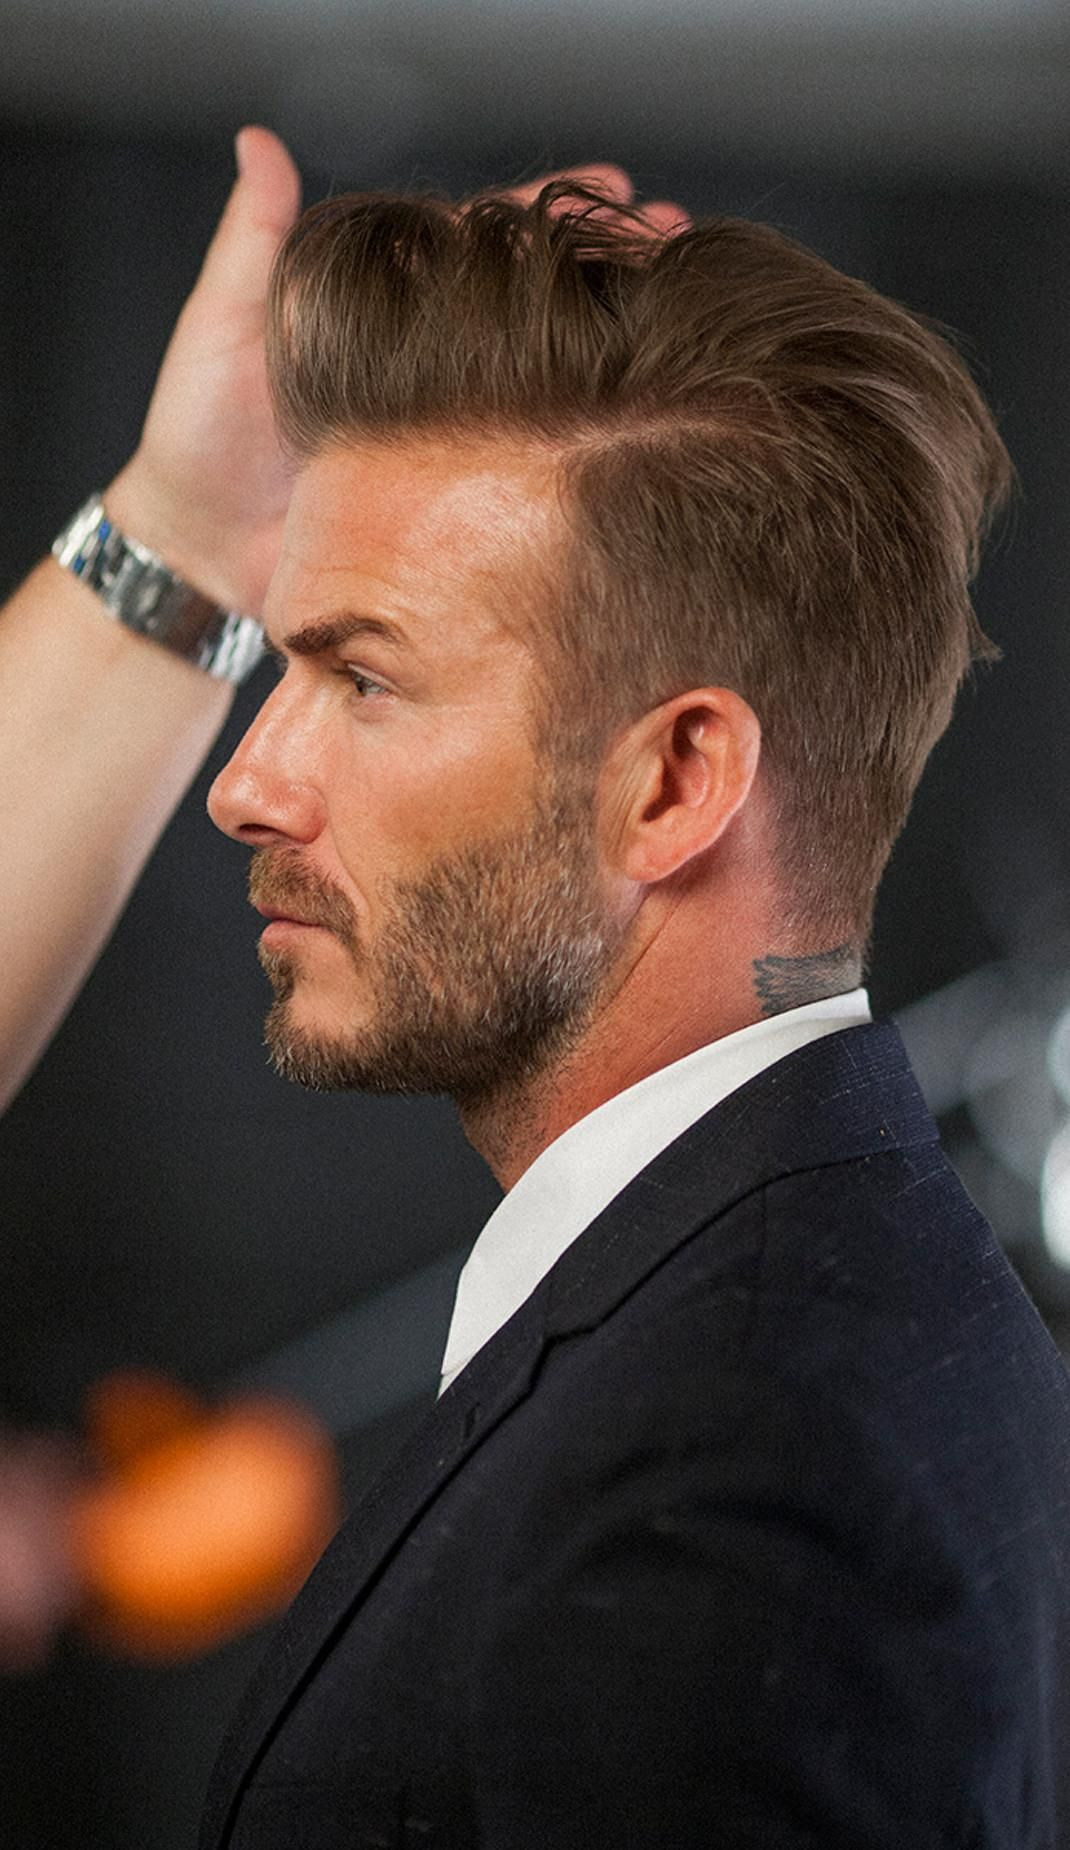 The Secret To Great Hair David Beckham Hairstyle Beckham Haircut Beckham Hair